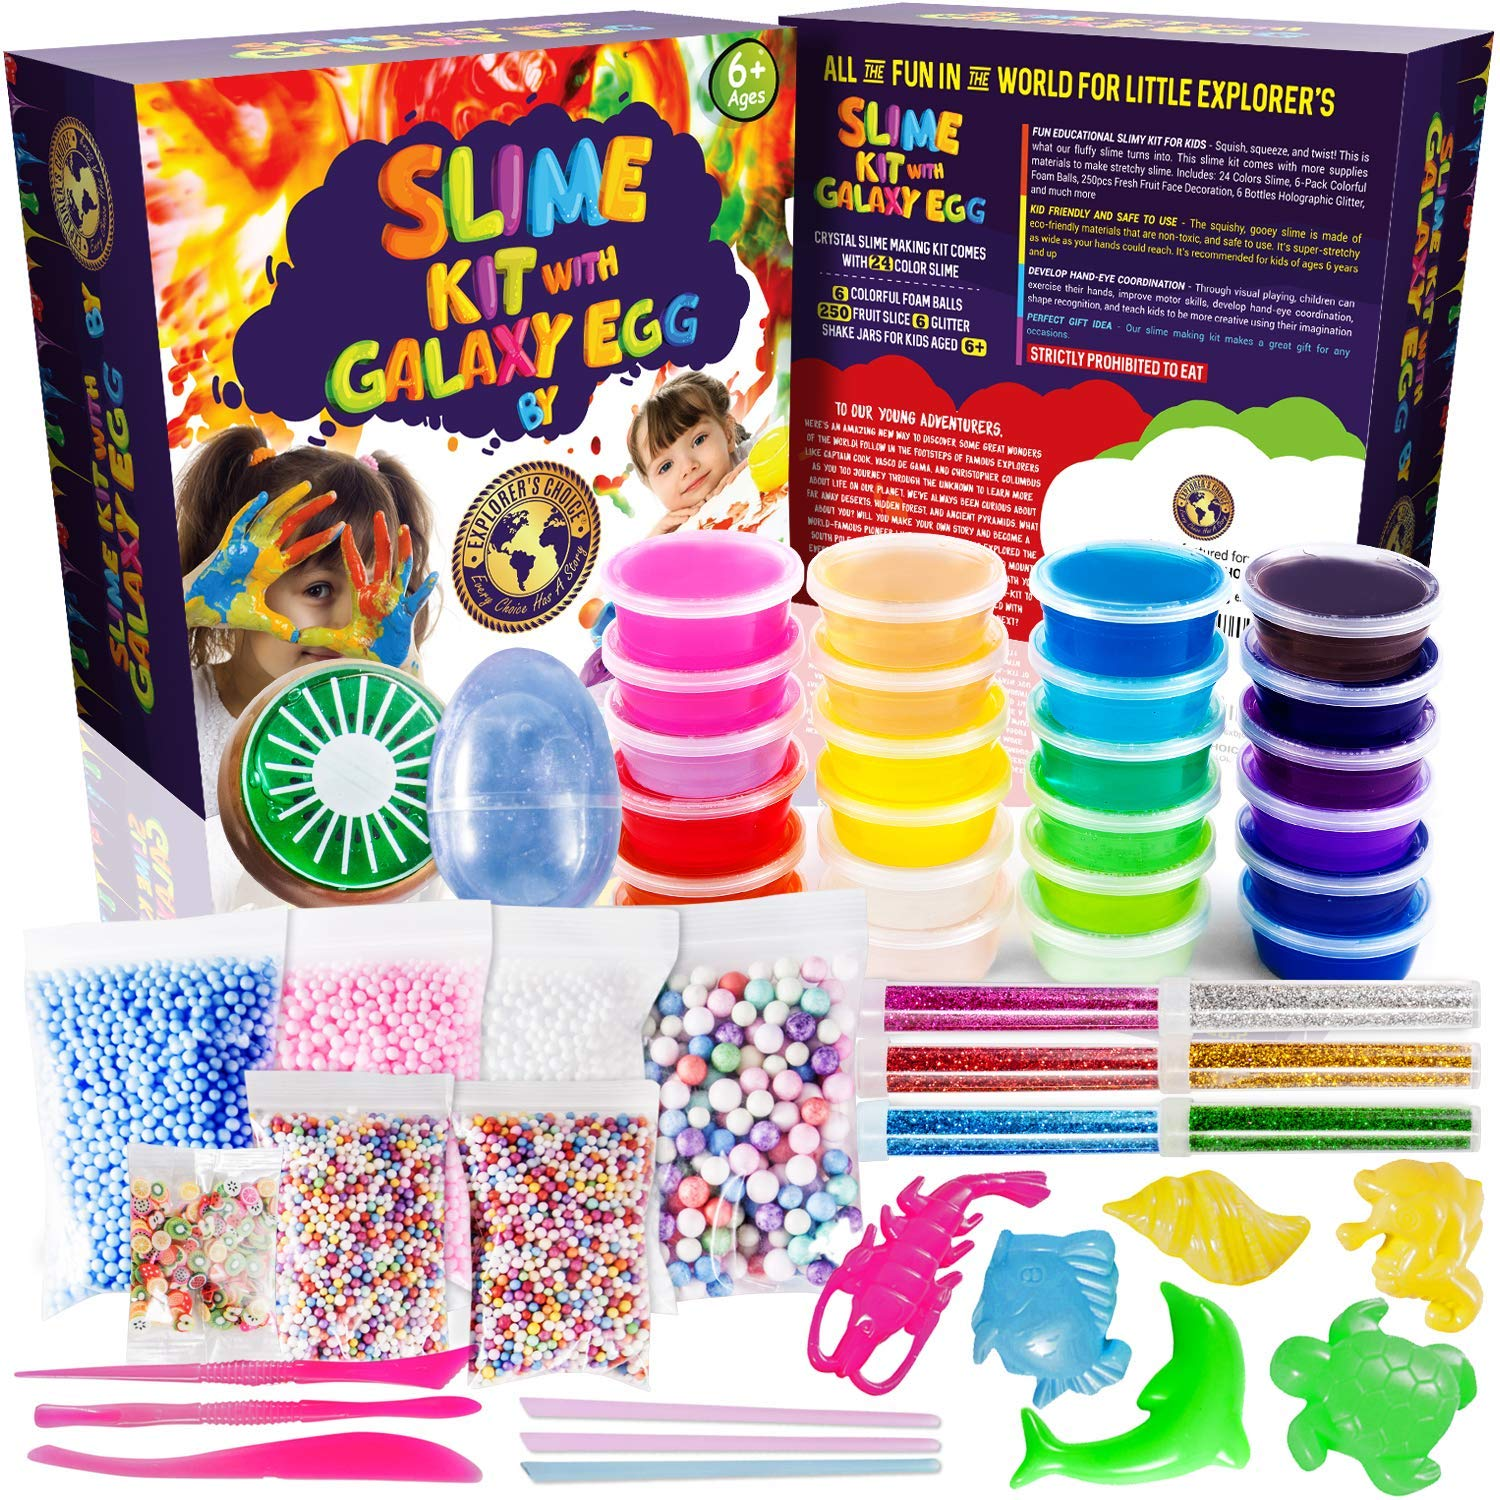 Explorer's Choice Slime KIT 2018 with Galaxy Egg Include 24 Color Crystal Slime and Supplies